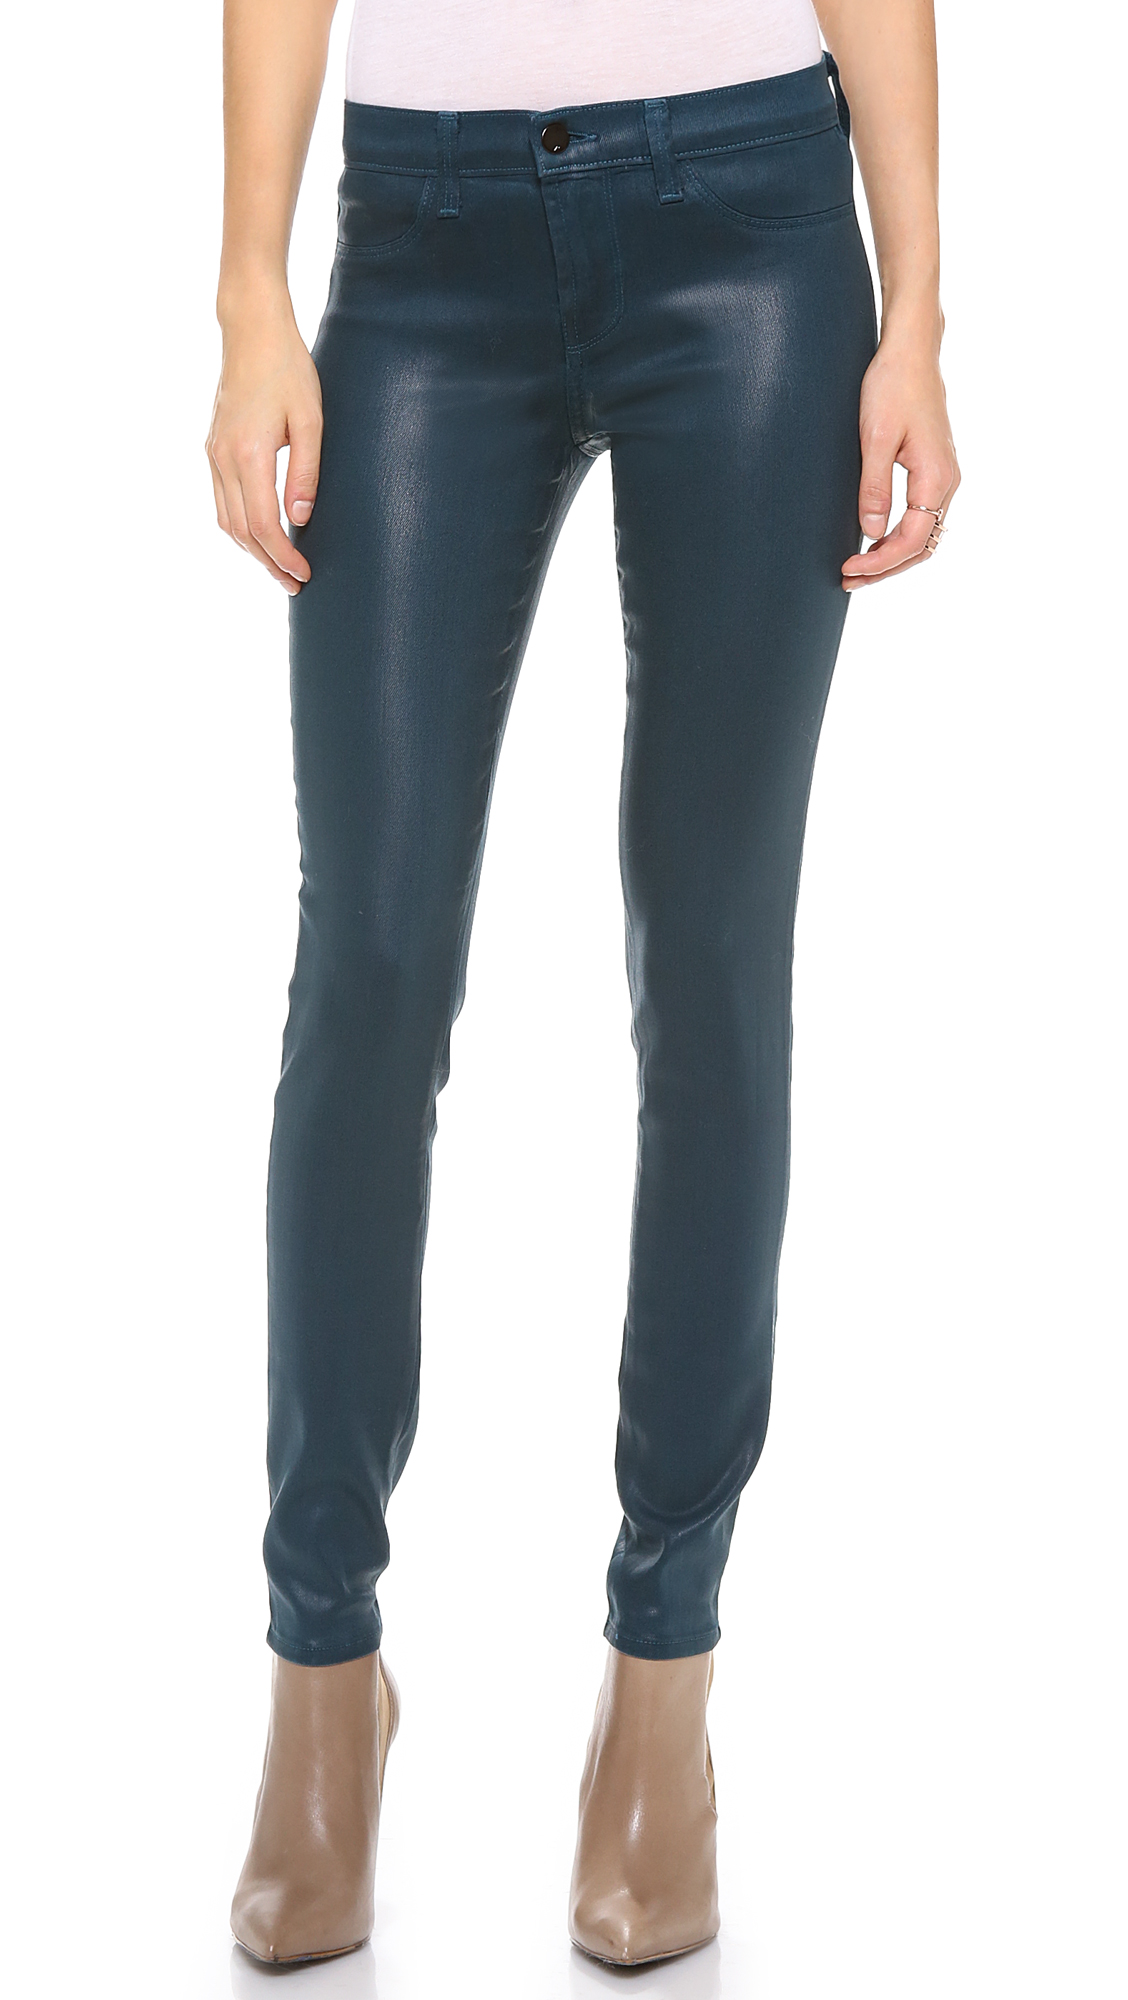 j brand 485 super skinny coated jeans in blue lacquered. Black Bedroom Furniture Sets. Home Design Ideas